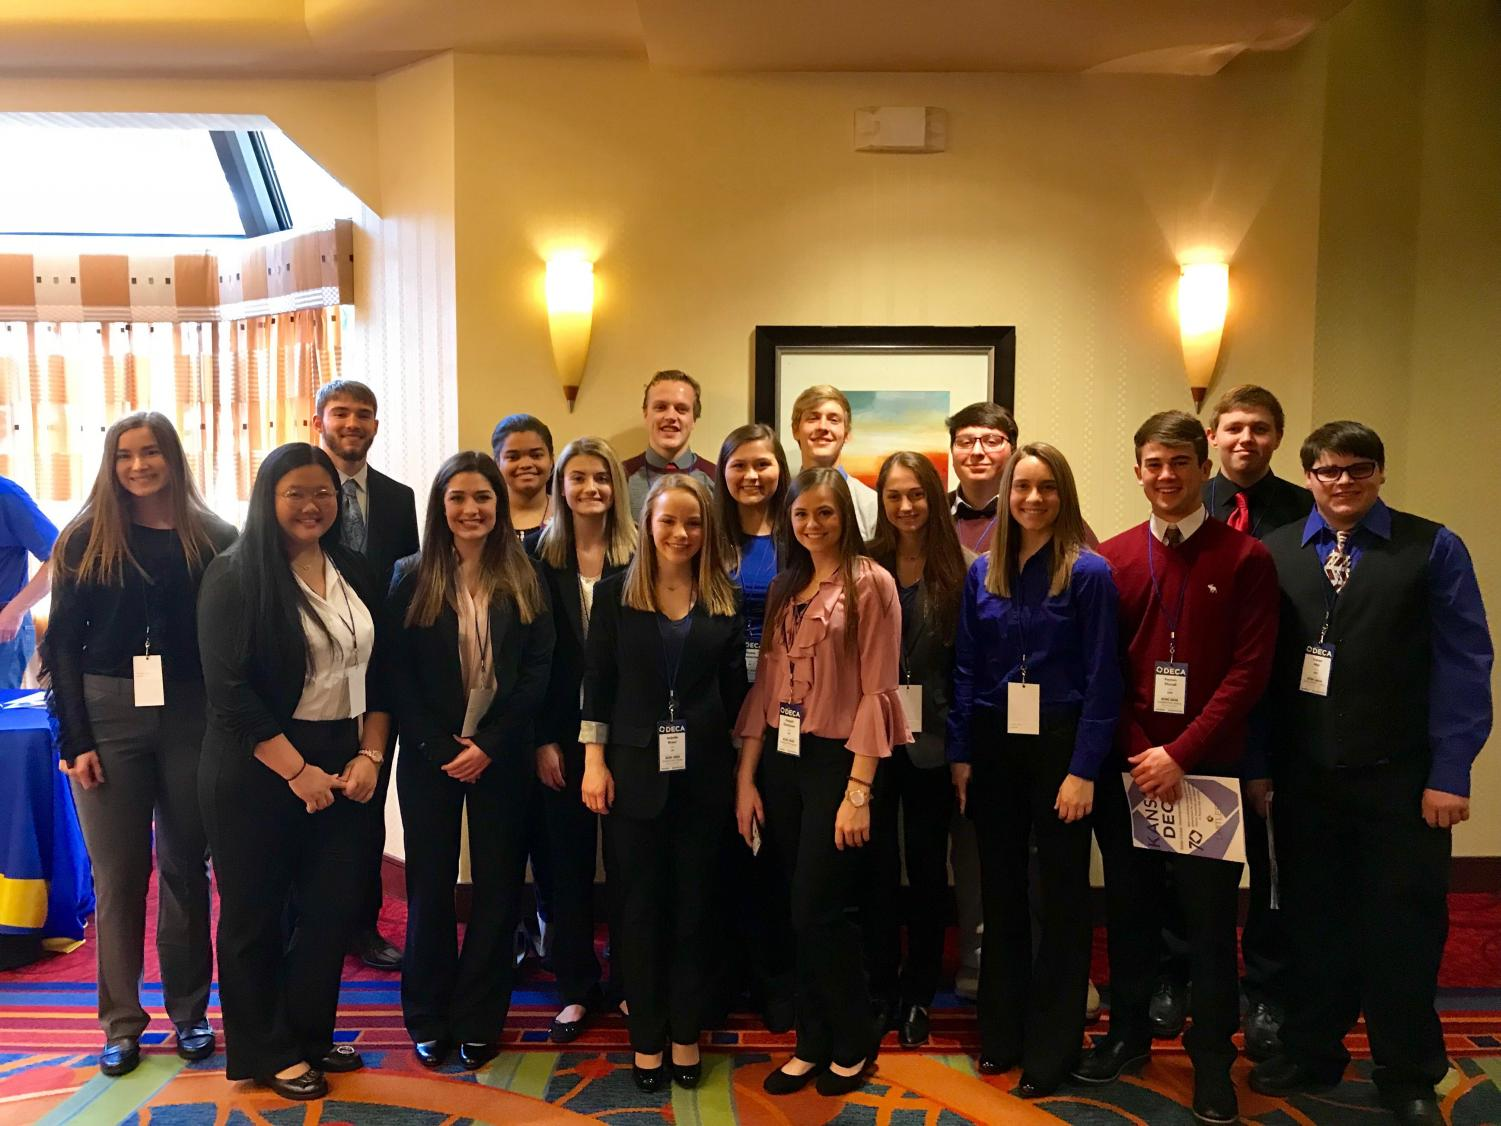 19 DECA members competed at the state conference. Members prepared for months in advance, writing papers and preparing presentations to earn their way to nationals.